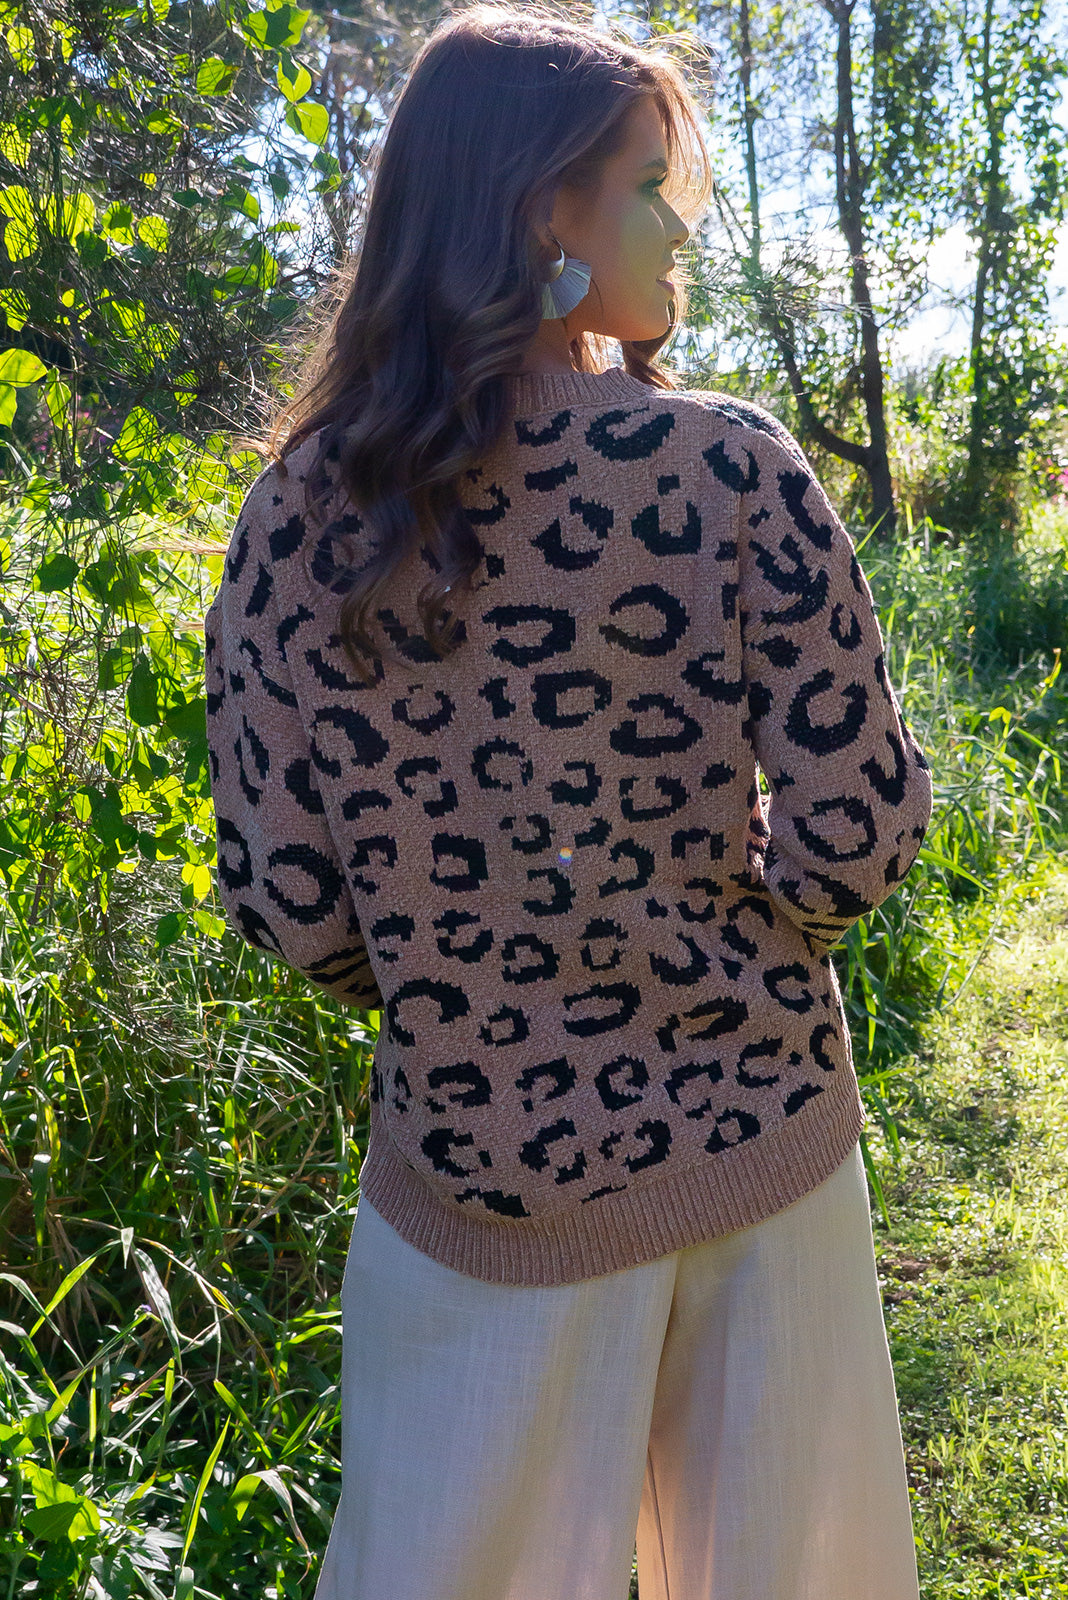 Jumper Caro Animale features a large graphic leopard design on a ultra soft velvet touch fabric